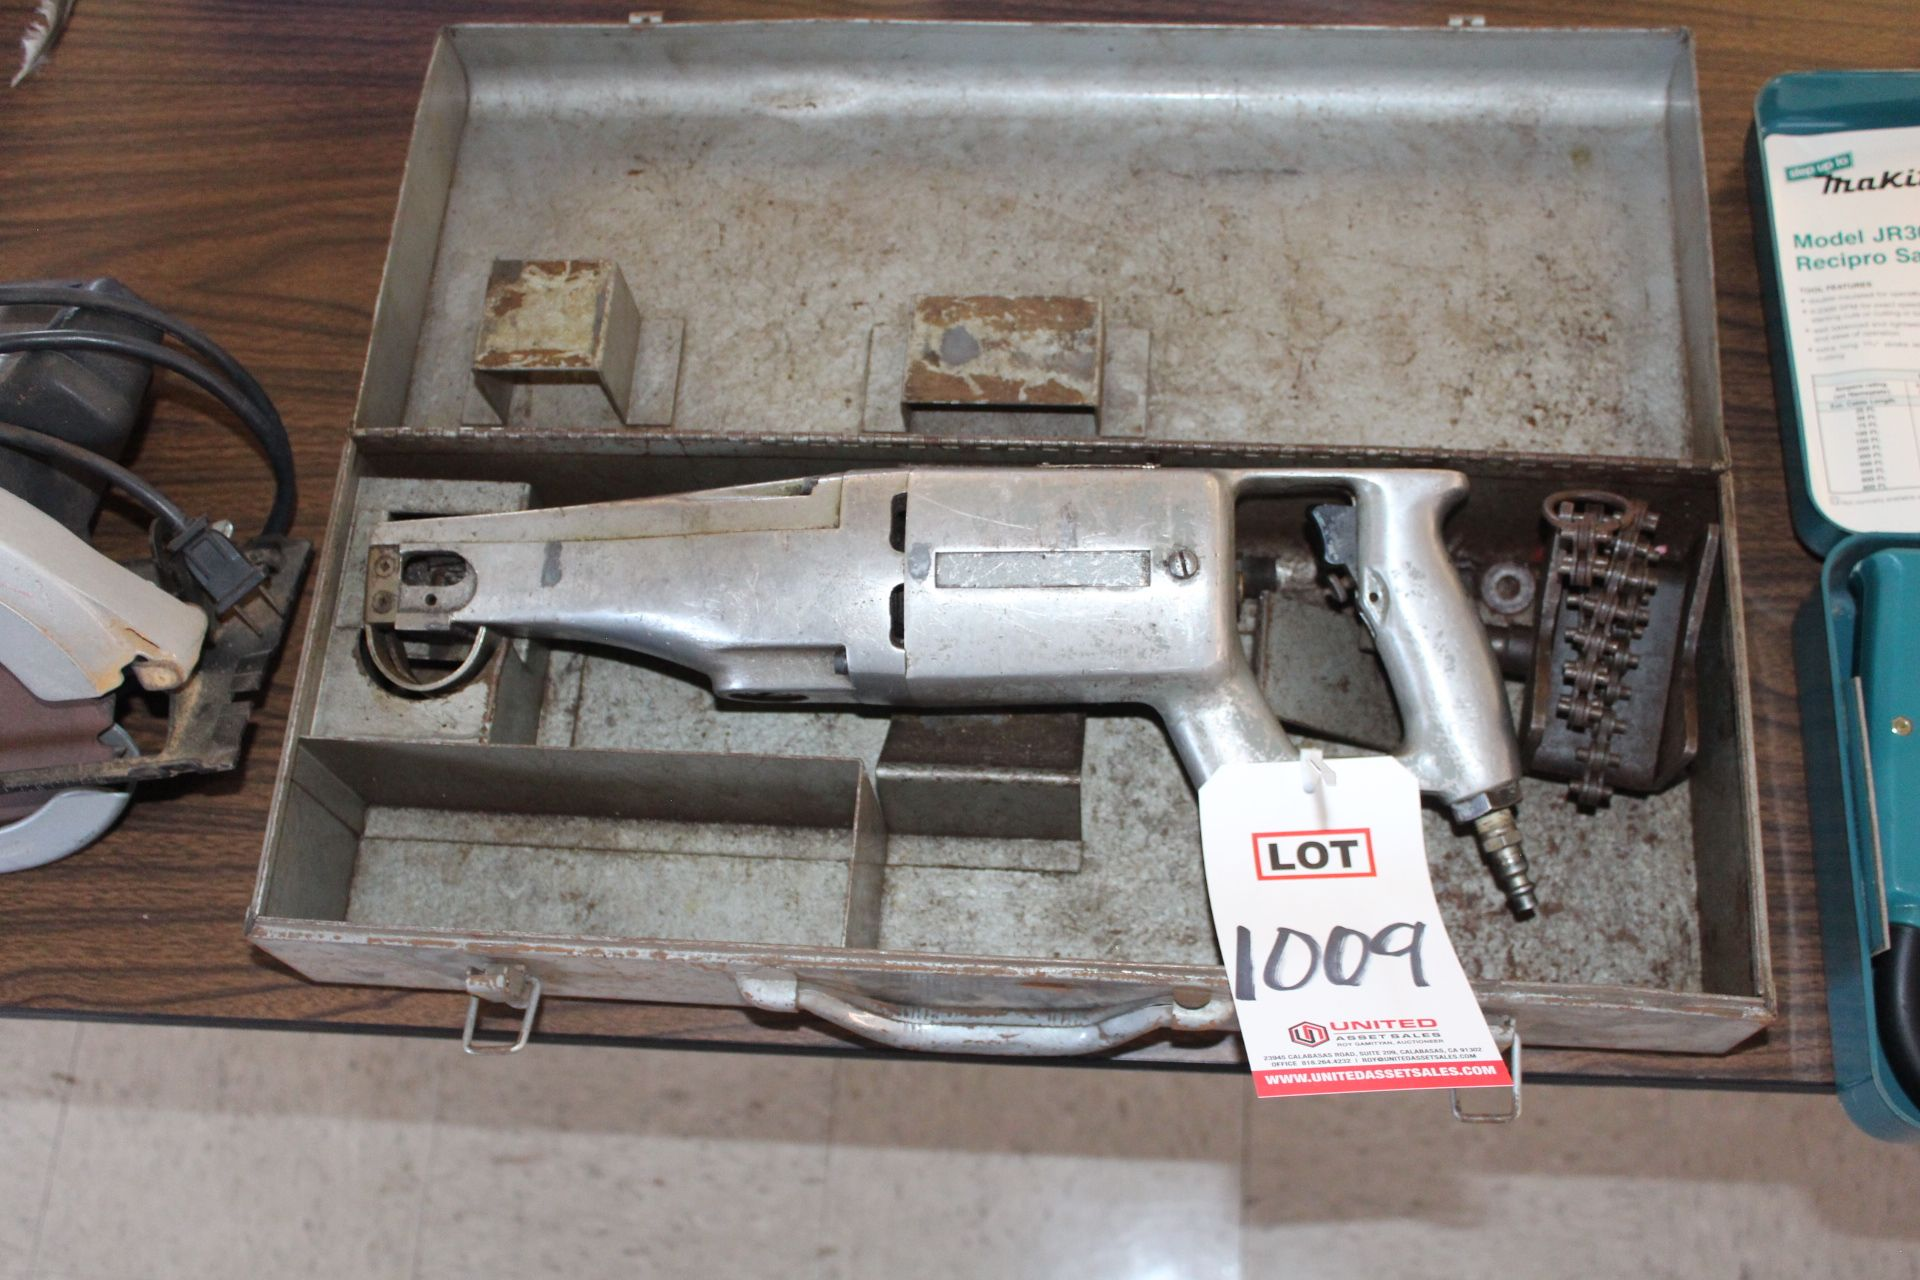 Lot 1009 - INGERSOLL RAND PNEUMATIC RECIPROCATING SAW, (LUNCHROOM)